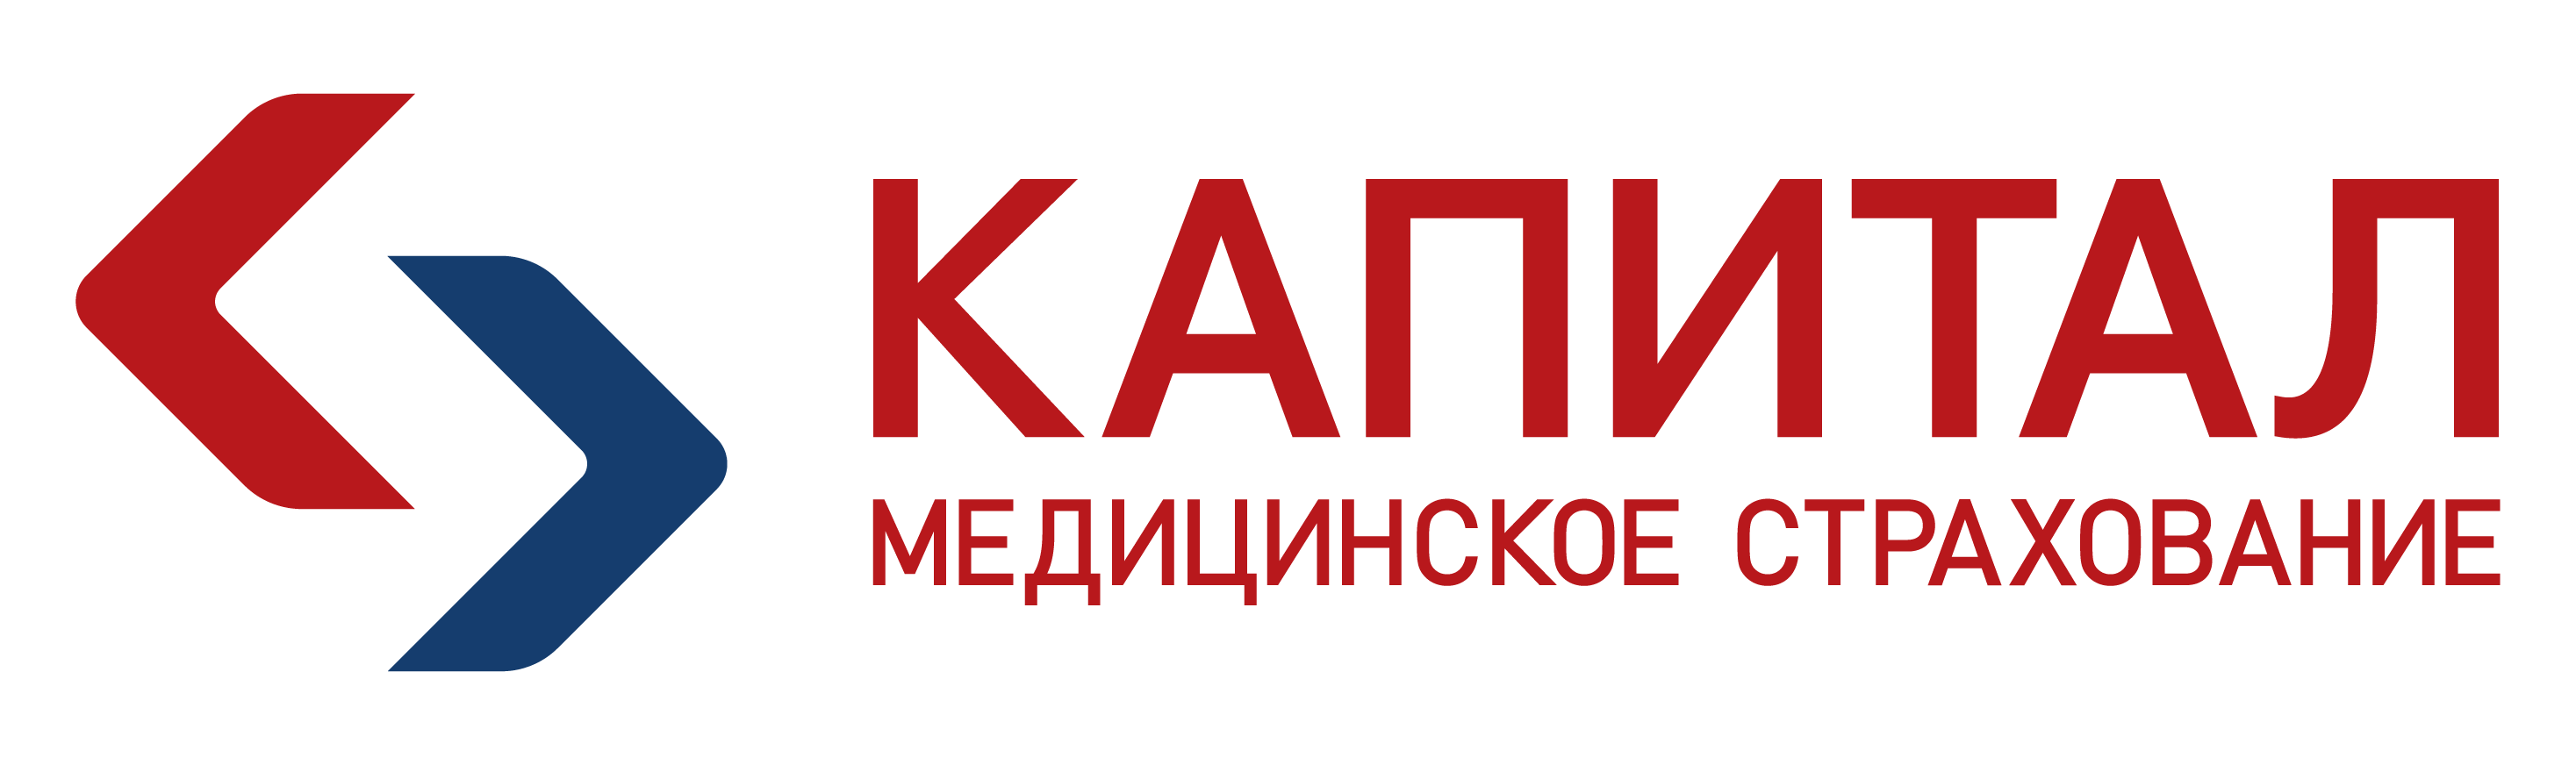 http://oms44.ru/images/stories/44003_logo.png